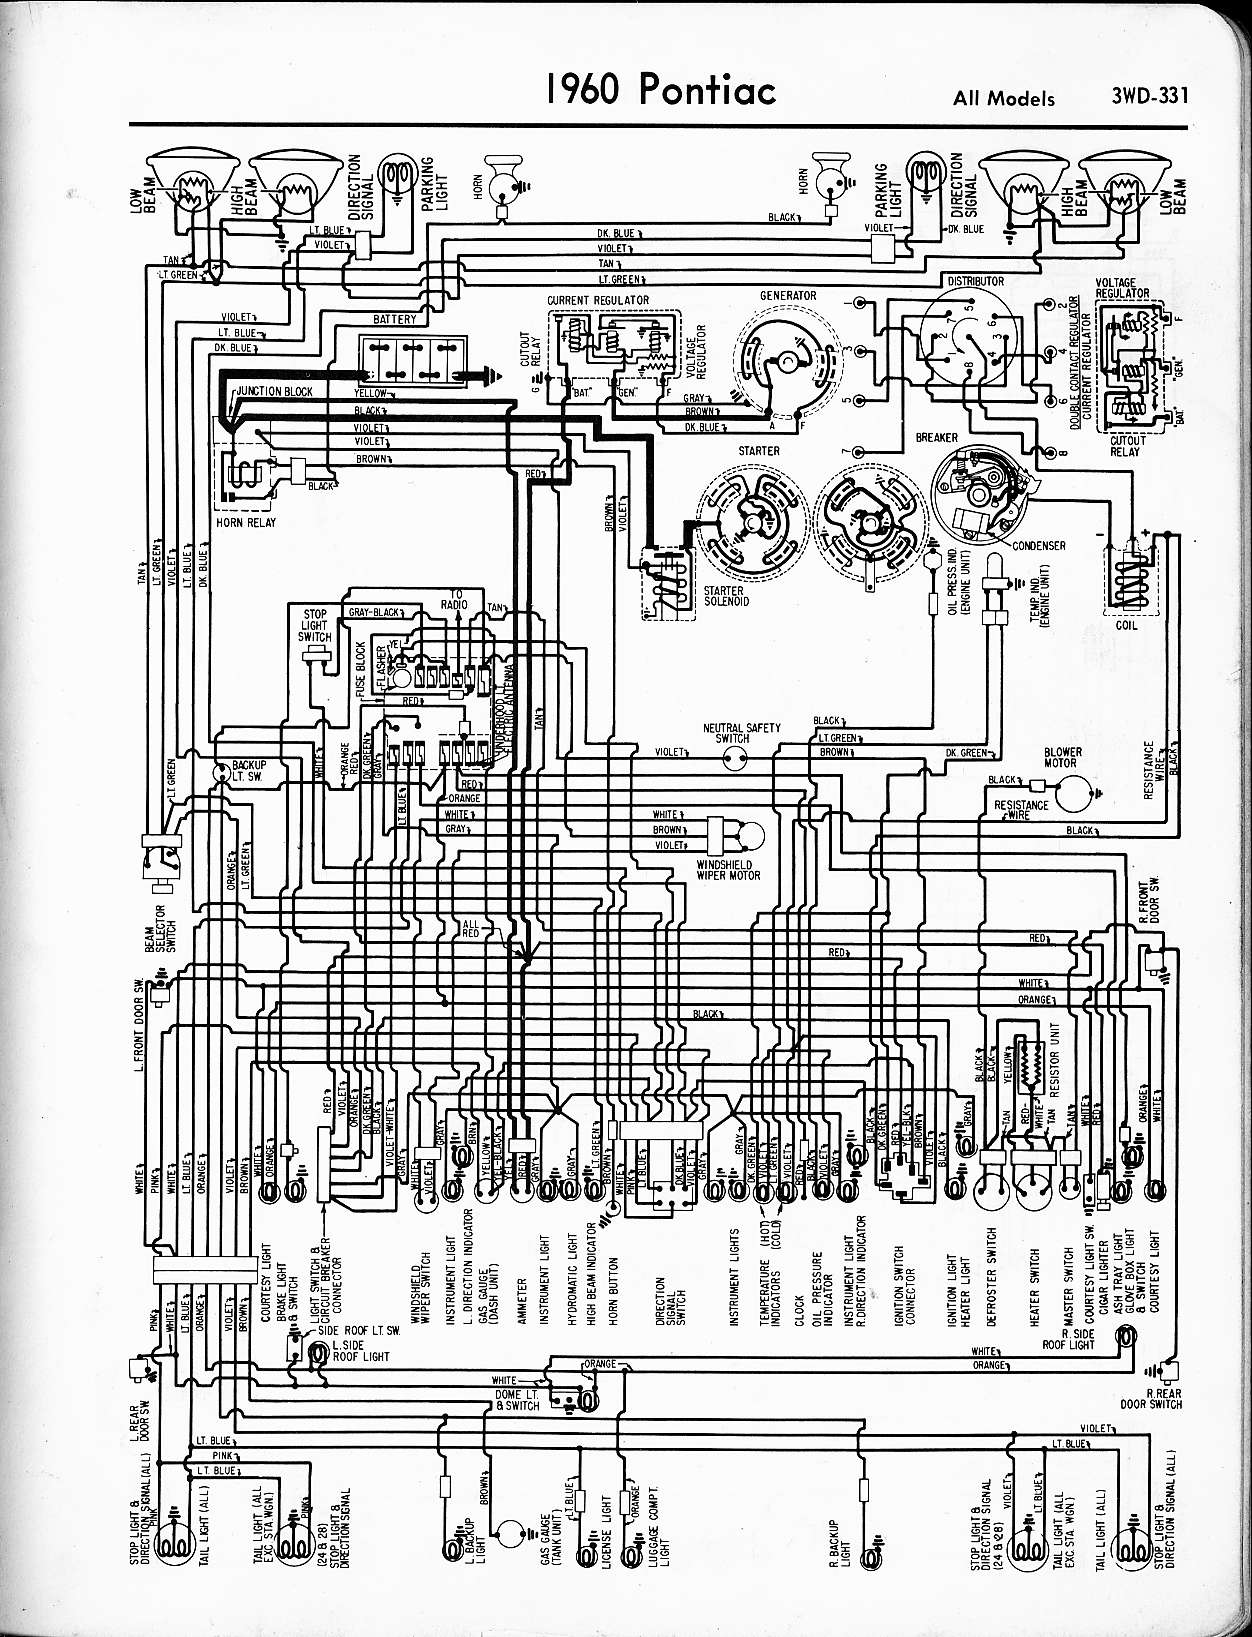 wallace racing wiring diagrams rh wallaceracing com 1971 Pontiac Firebird Wiring Diagram 1970 pontiac firebird wiring diagram